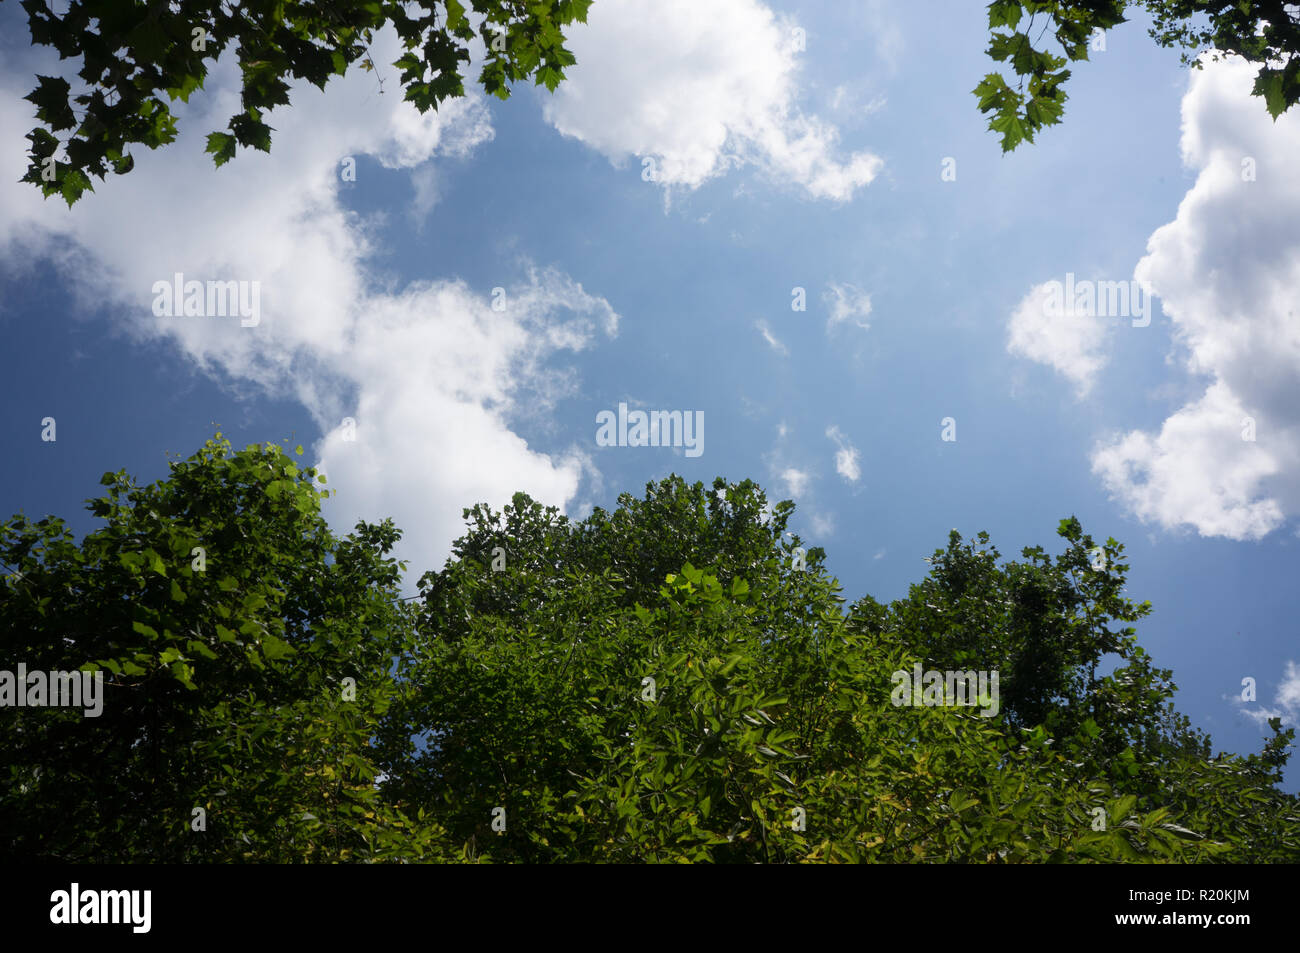 Bright Blue Sky With White Fluffy Clouds Through Tall Green Trees is an ideal photograph for use as a banner image with plenty of room for added text. - Stock Image